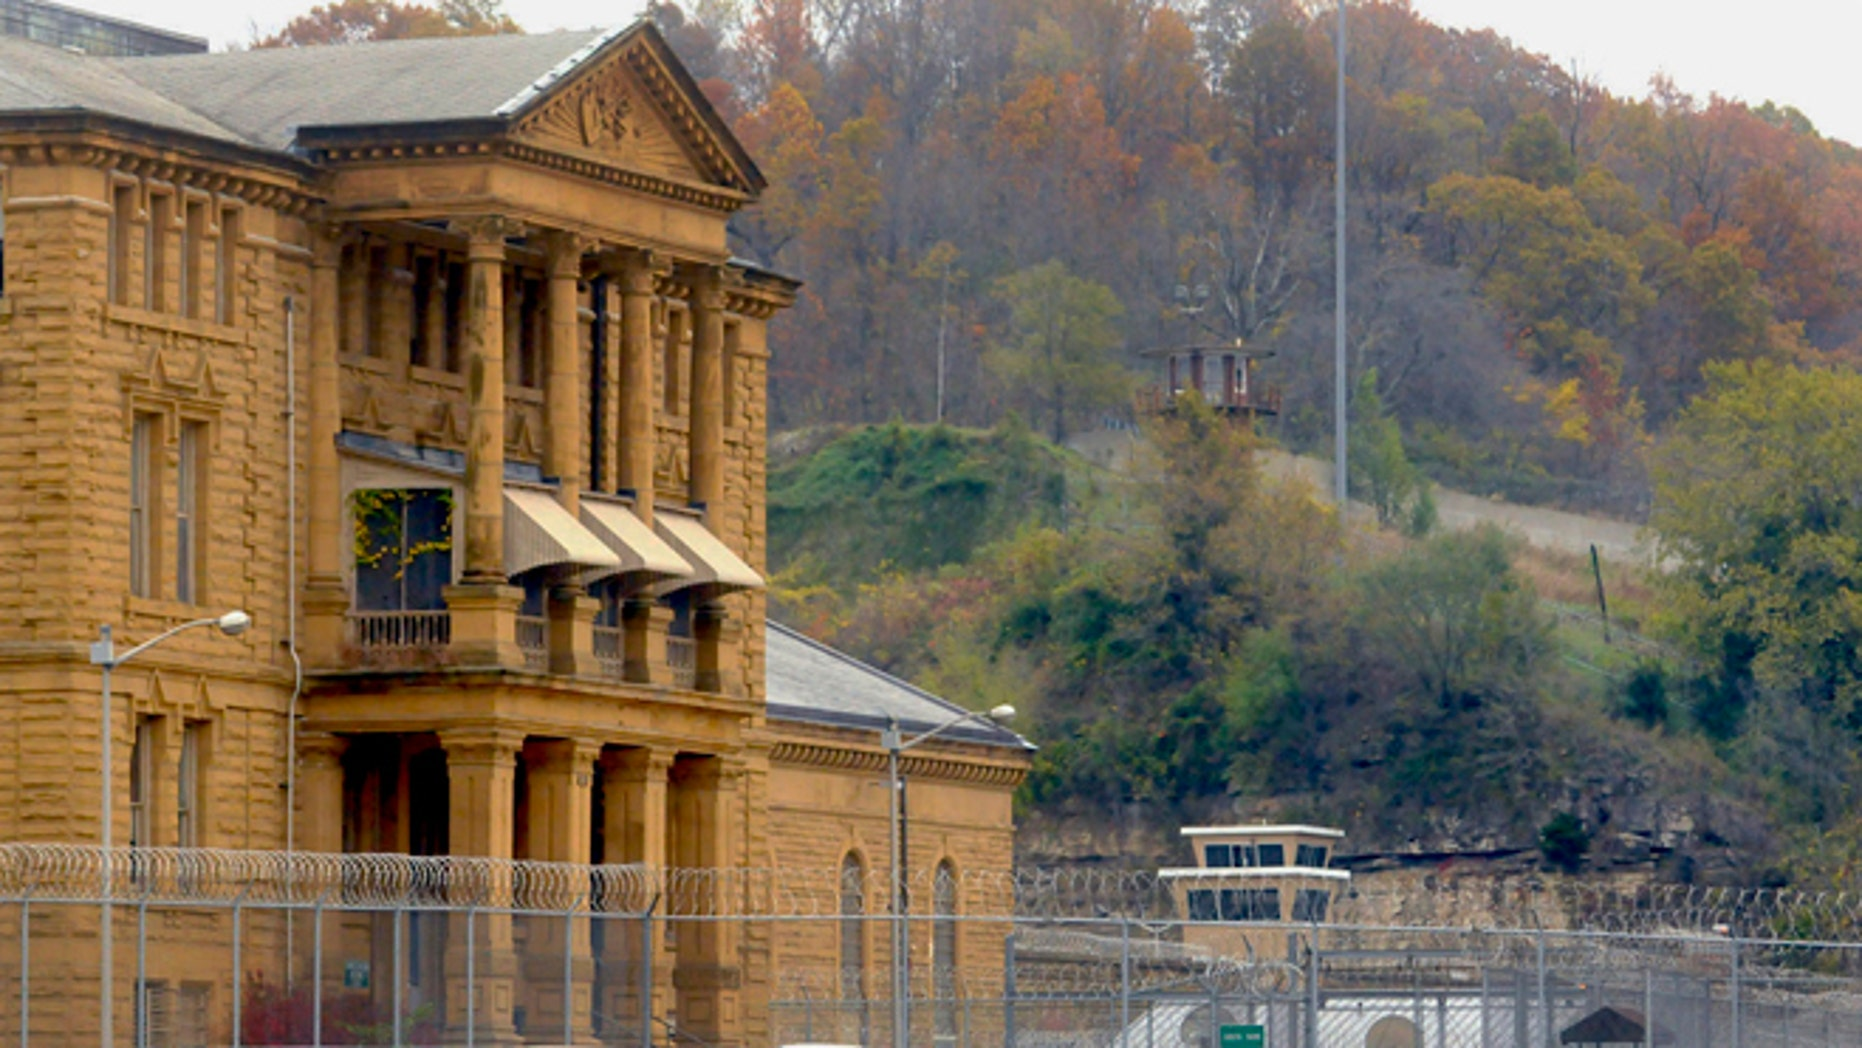 This Nov. 4, 2011 photo shows the Menard Correctional Center in Chester, Ill. The Associated Press has learned that the Illinois Department of Corrections has searched guards departing at least half a dozen prisons over the last week beginning Monday, July 23, 2012.